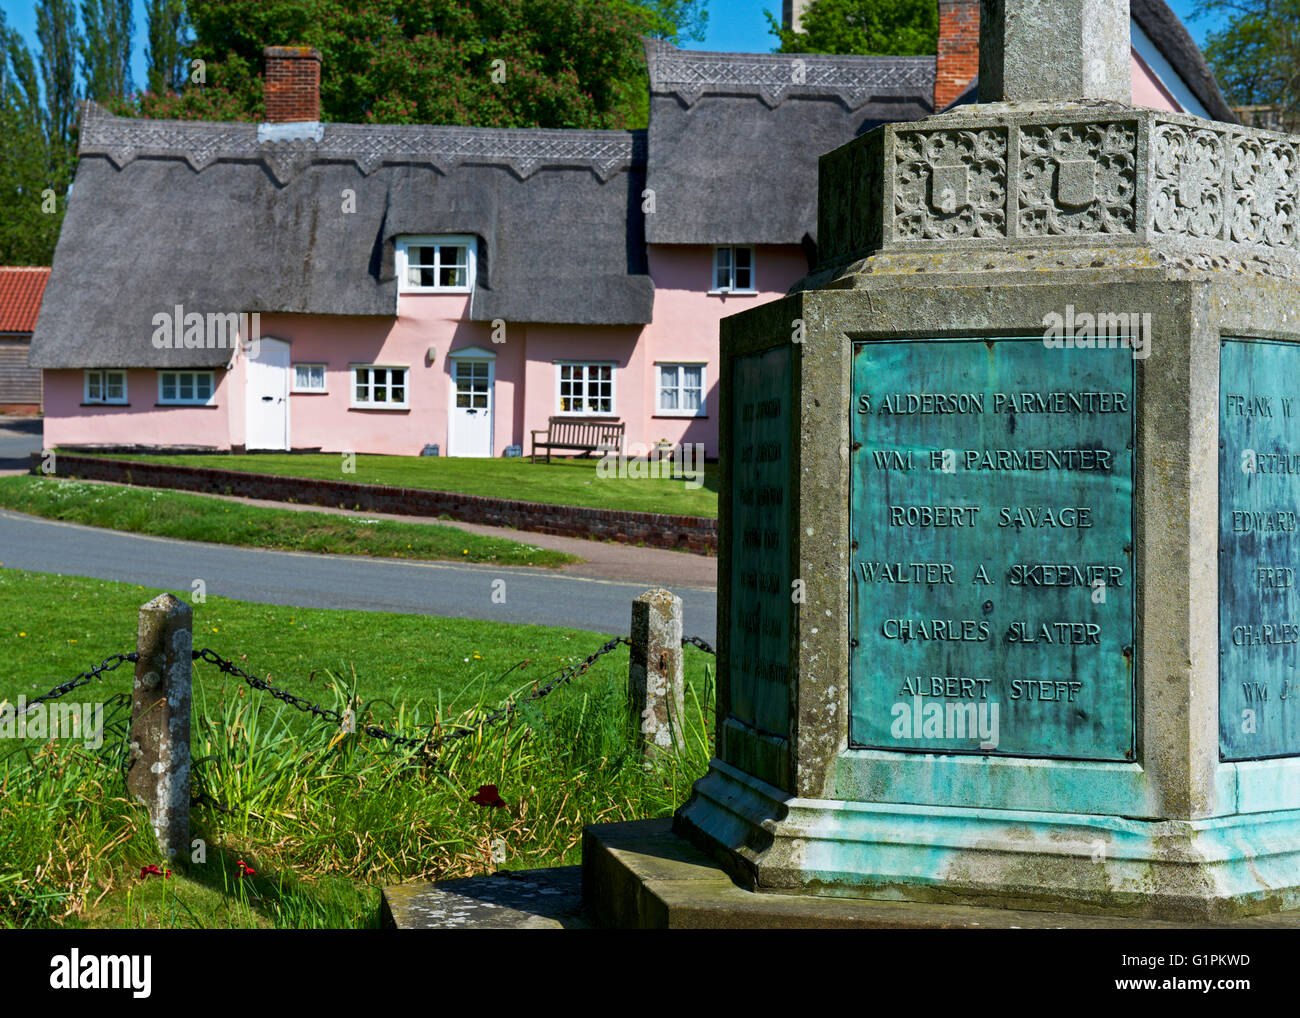 War memorial and almshouses, in the village of Cavendish, Suffolk, England UK - Stock Image